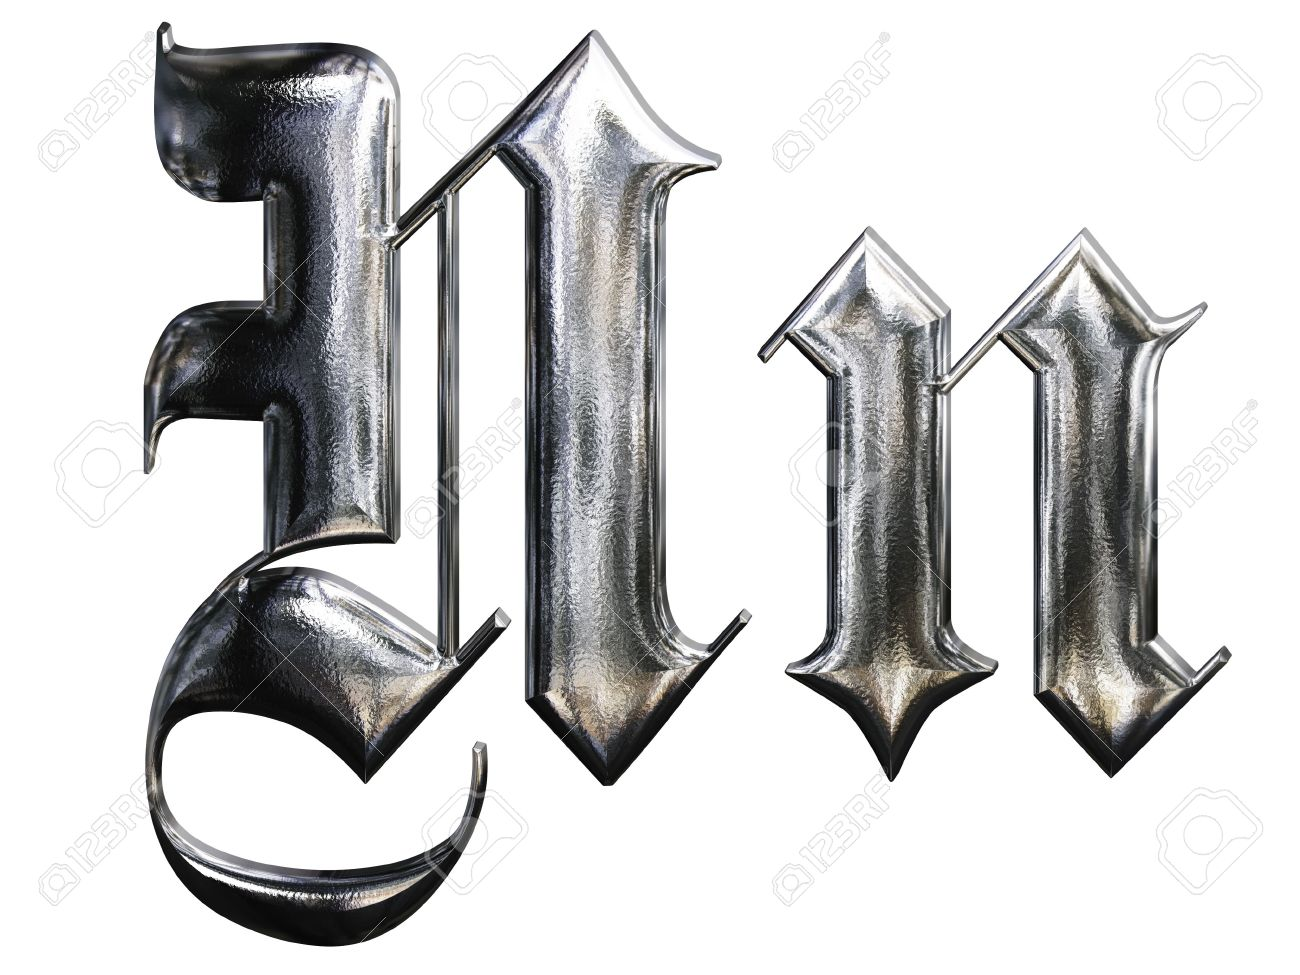 Metallic Patterned Letter Of German Gothic Alphabet Font N Stock Photo